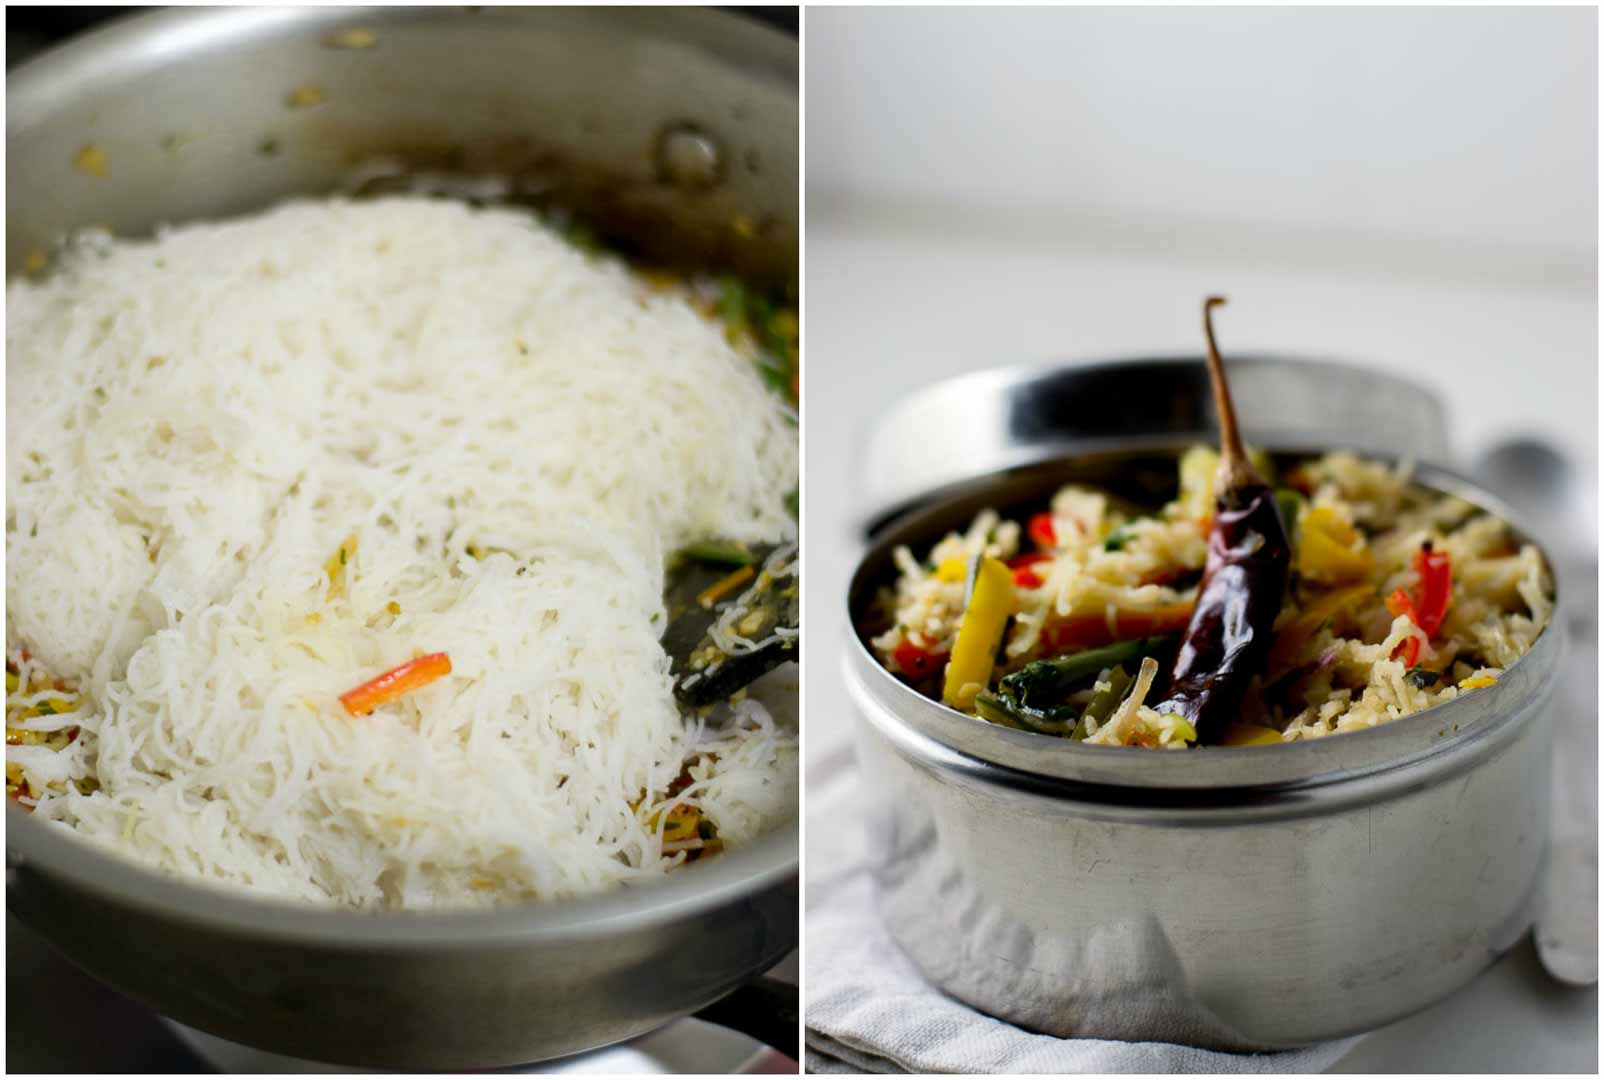 vegetable-rice-sevai-with-instant-rice-sevai-recipe-7